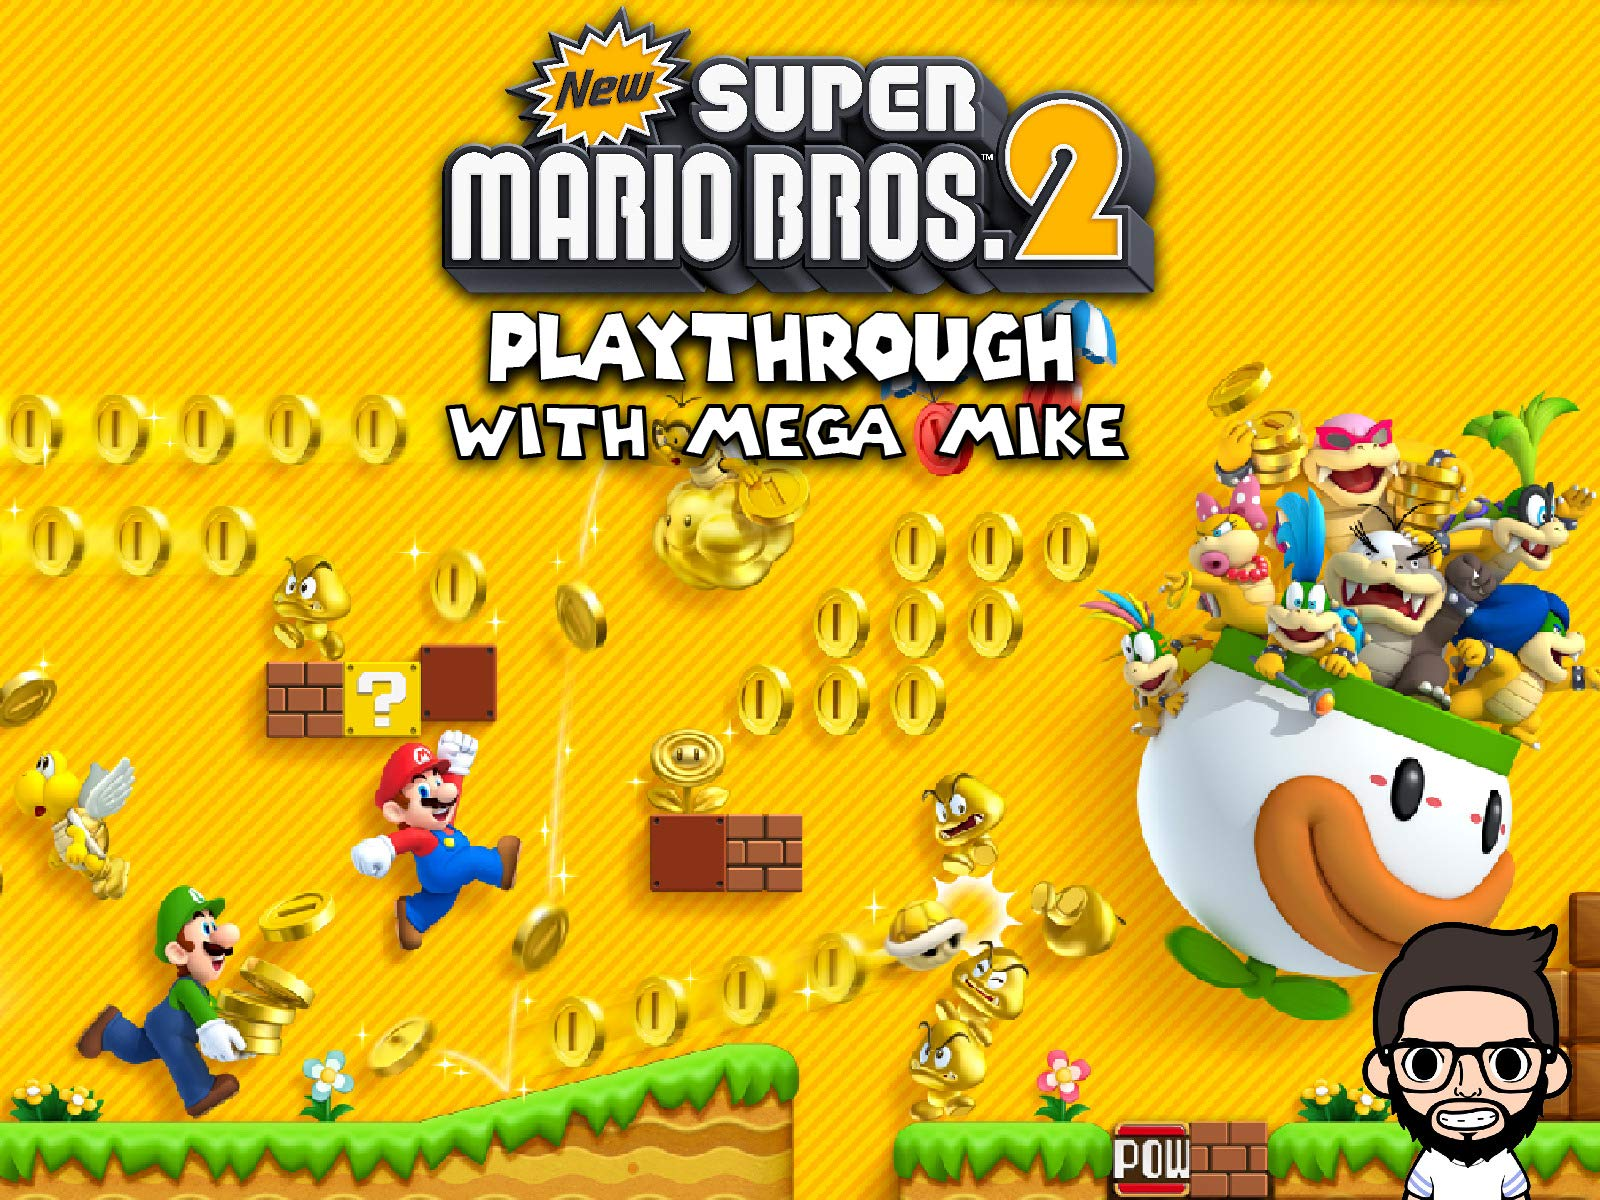 Watch Clip New Super Mario Bros 2 Playthrough With Mega Mike